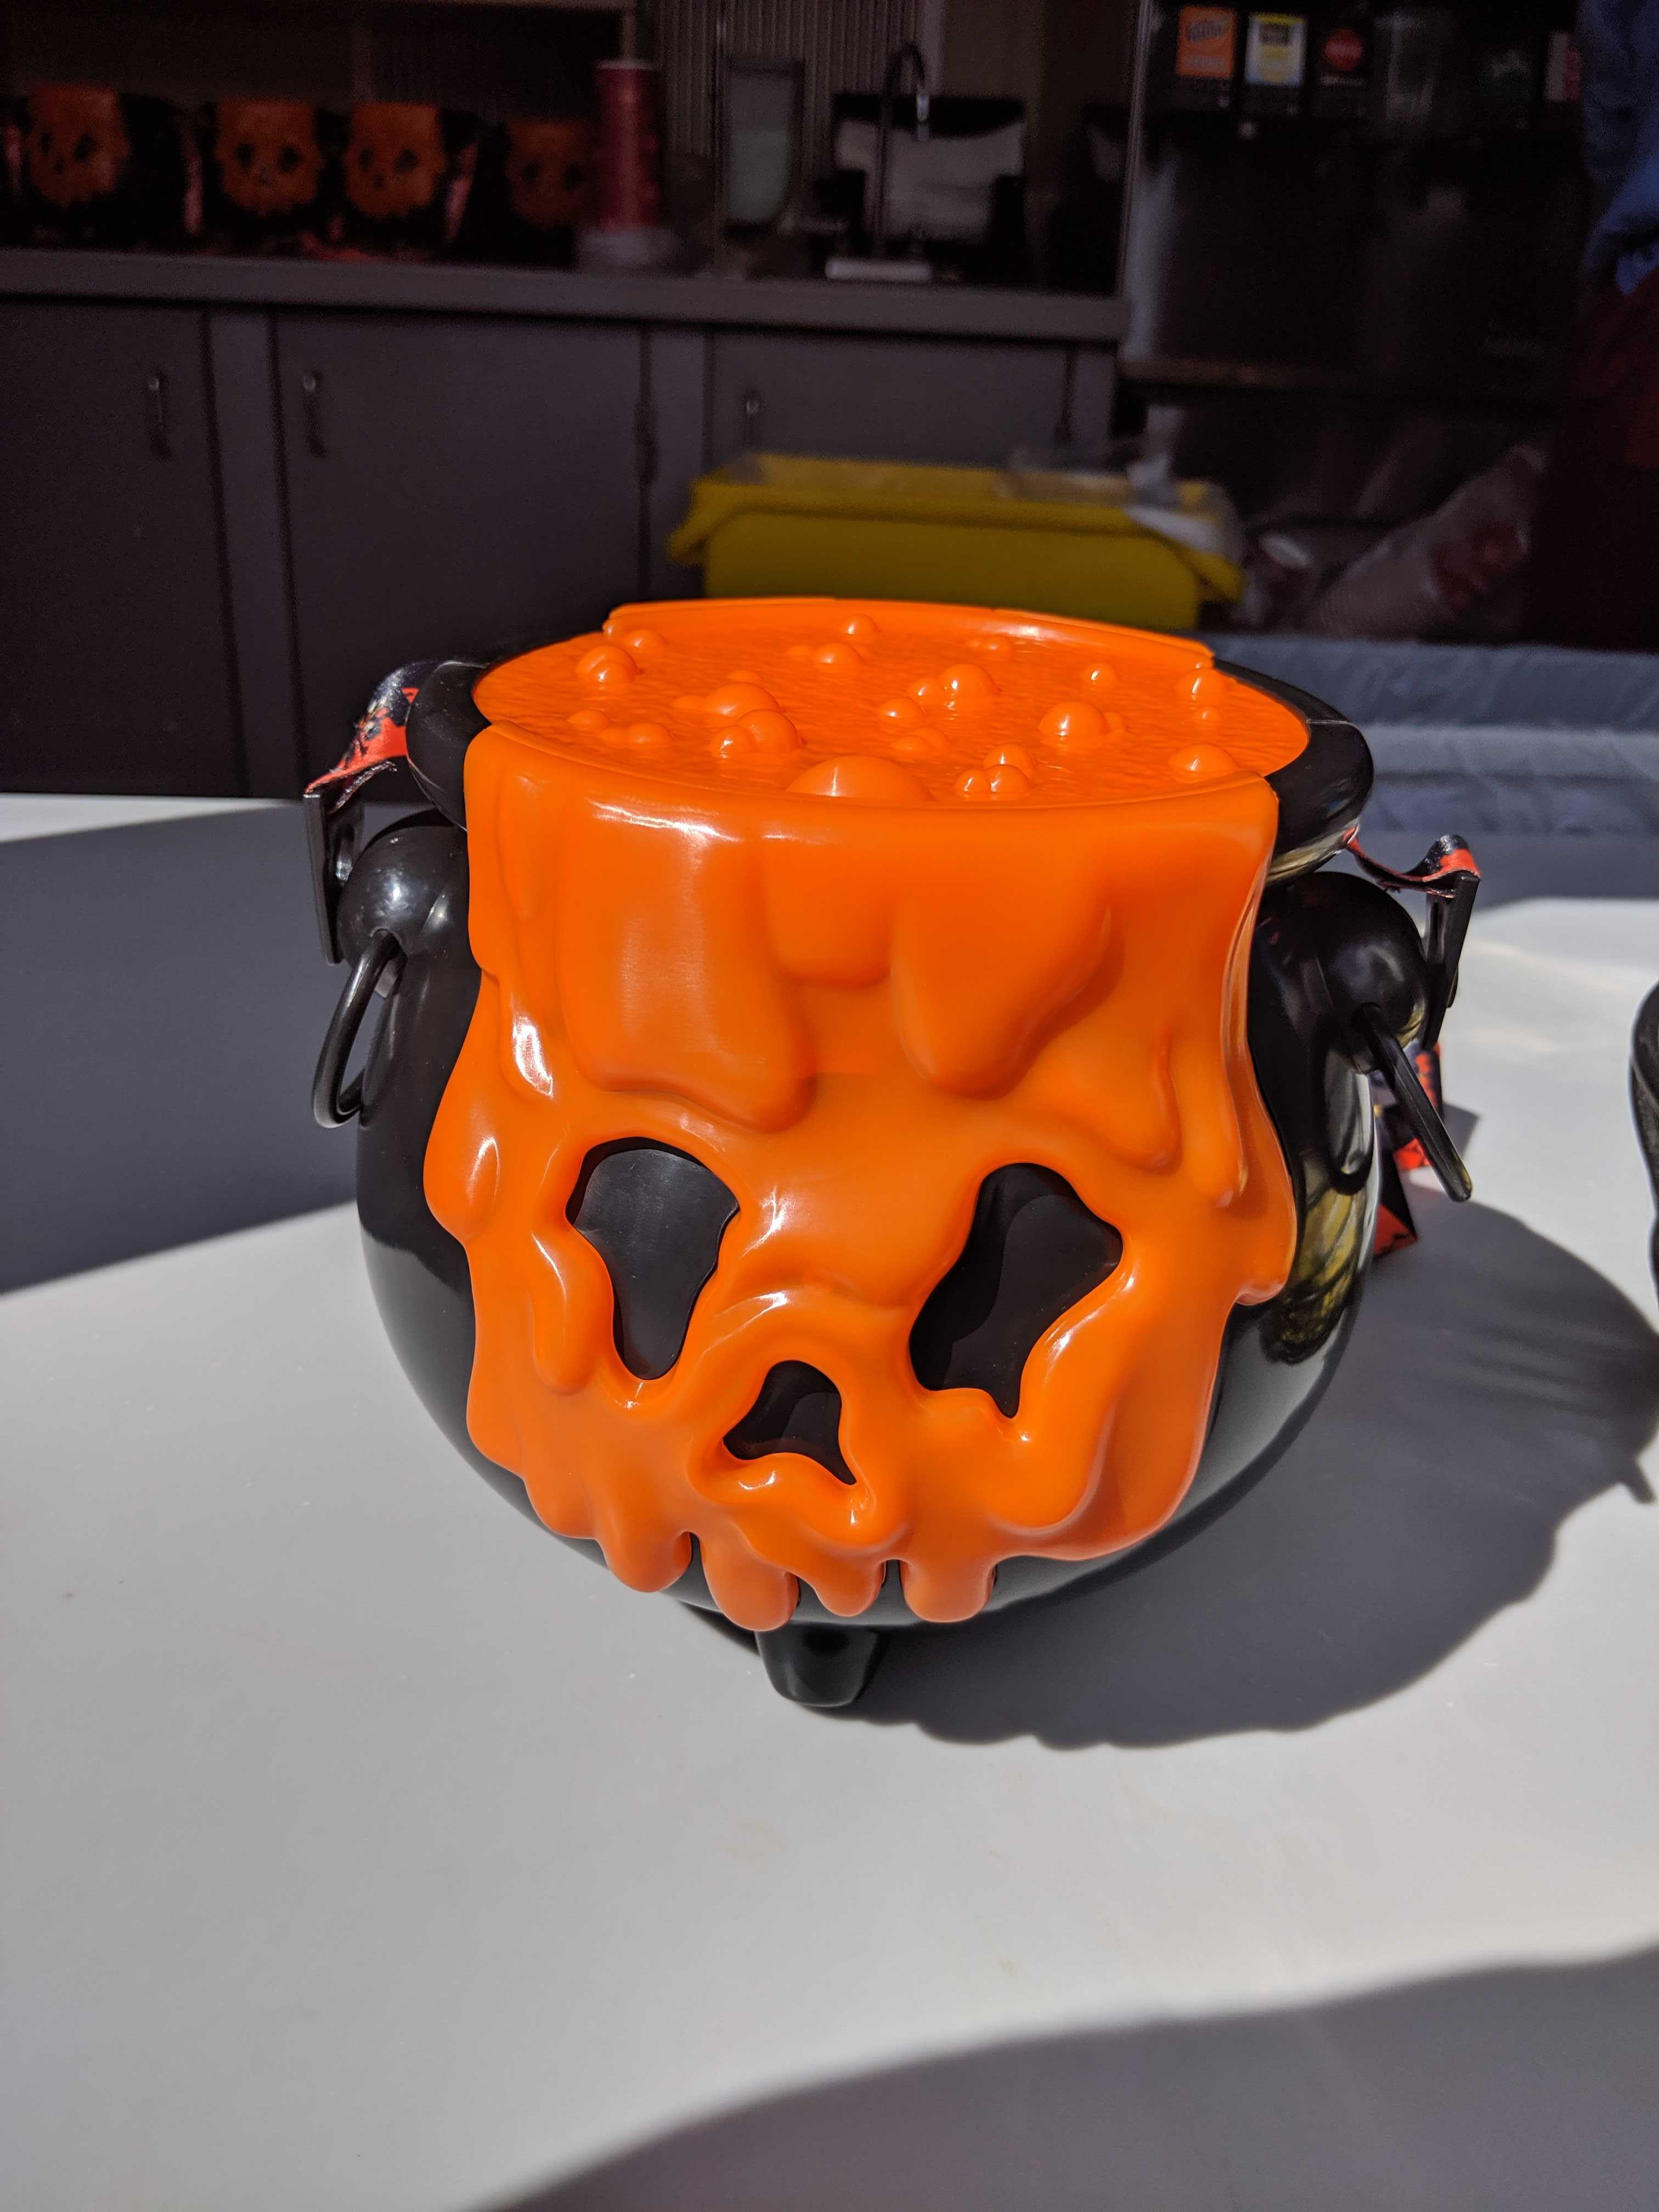 Spooky Orange Cauldron at Hollywood Studios